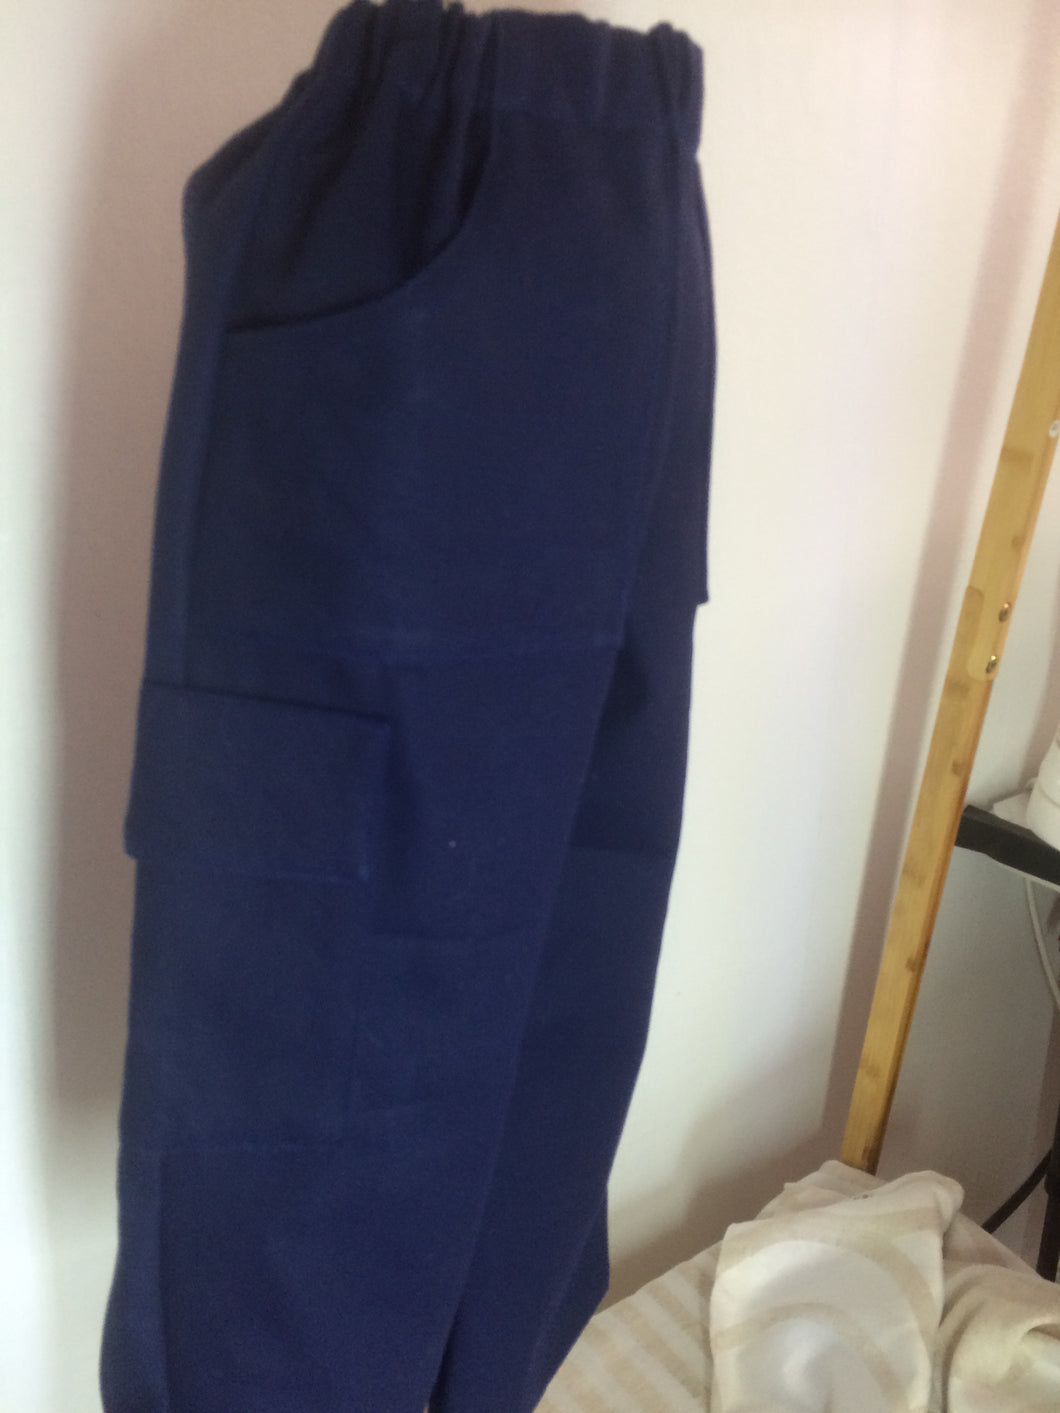 Cargo Pants - Blue Cotton